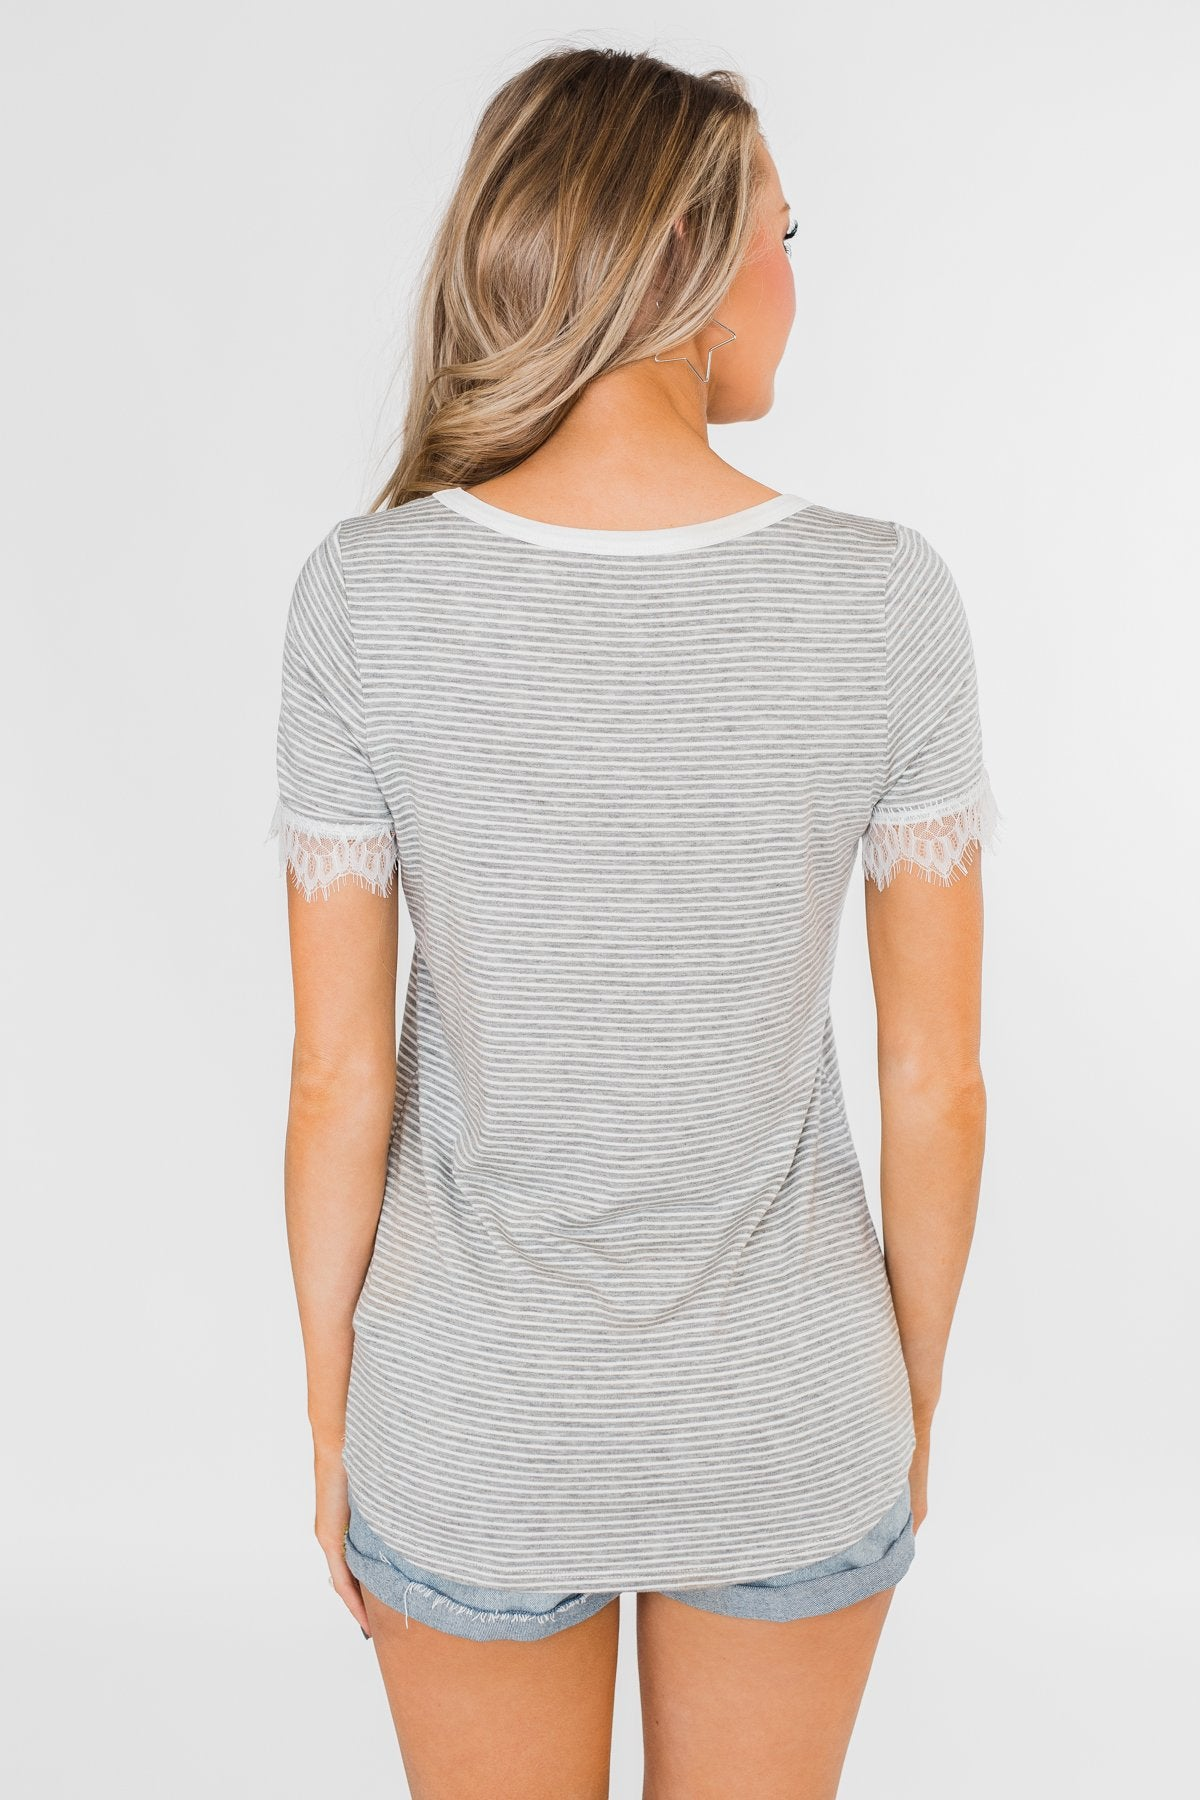 All About the Accents Lace Striped Top- Grey & White